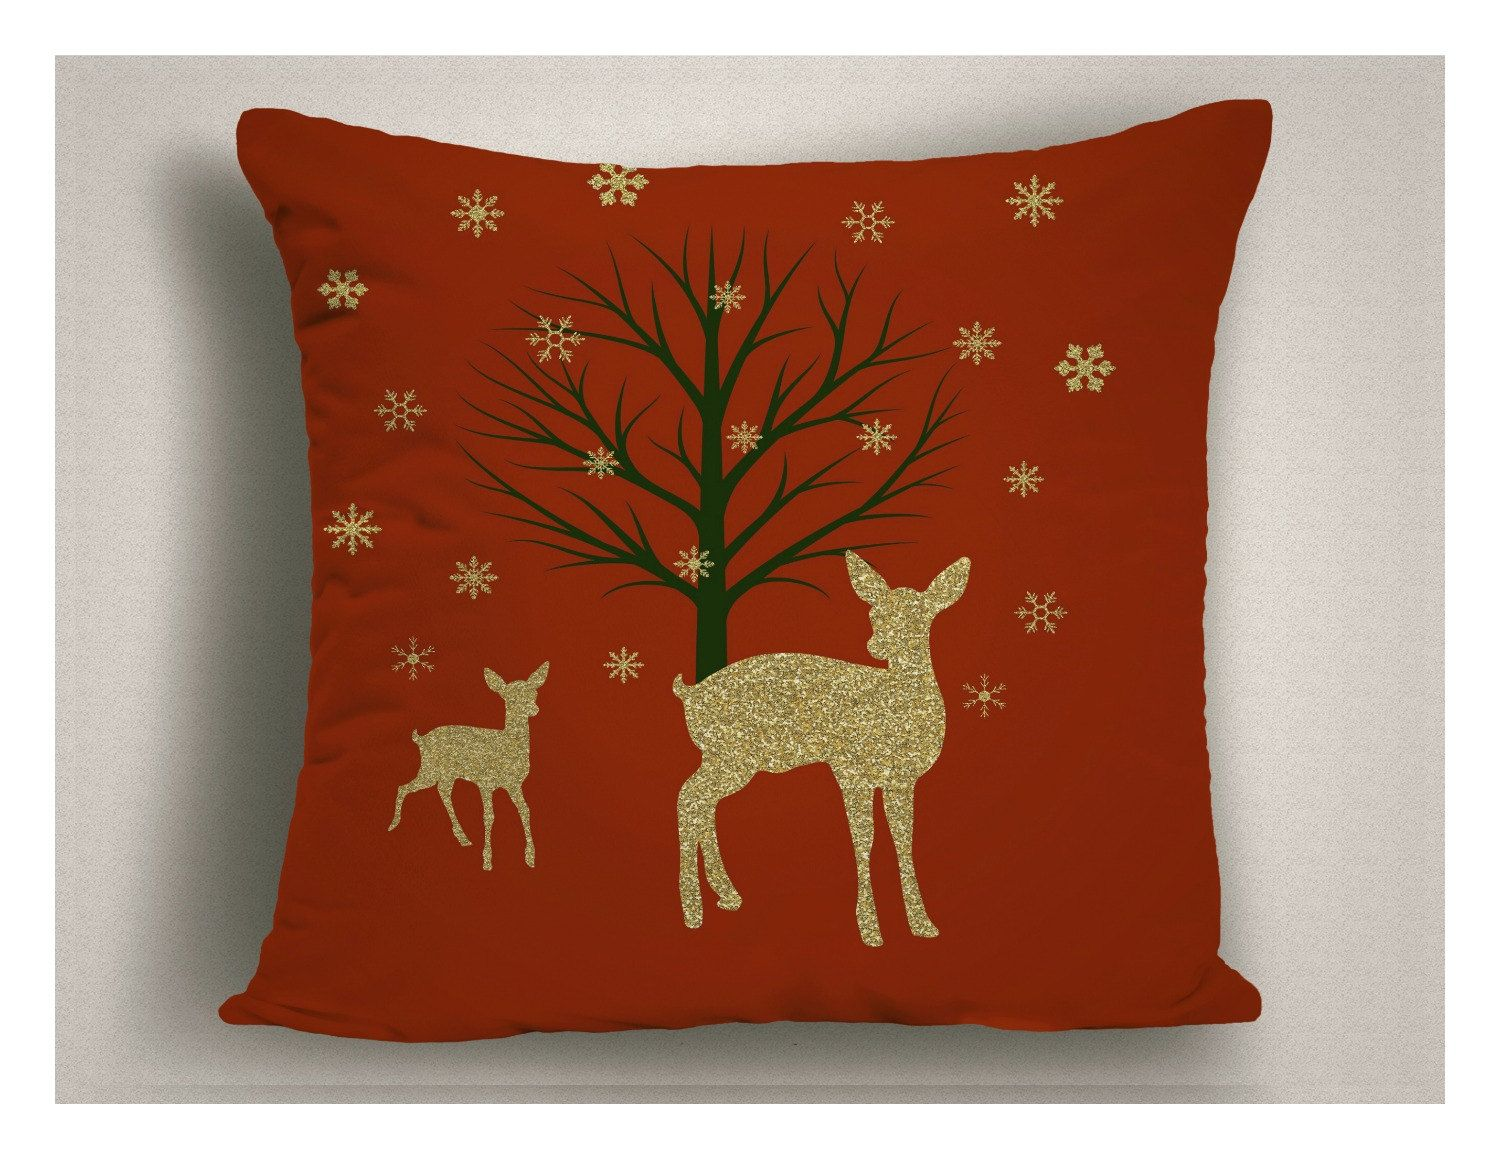 christmas decorations with reindeer and snow holiday pillows in red and gold unique holiday pillows christmas throw pillow covers